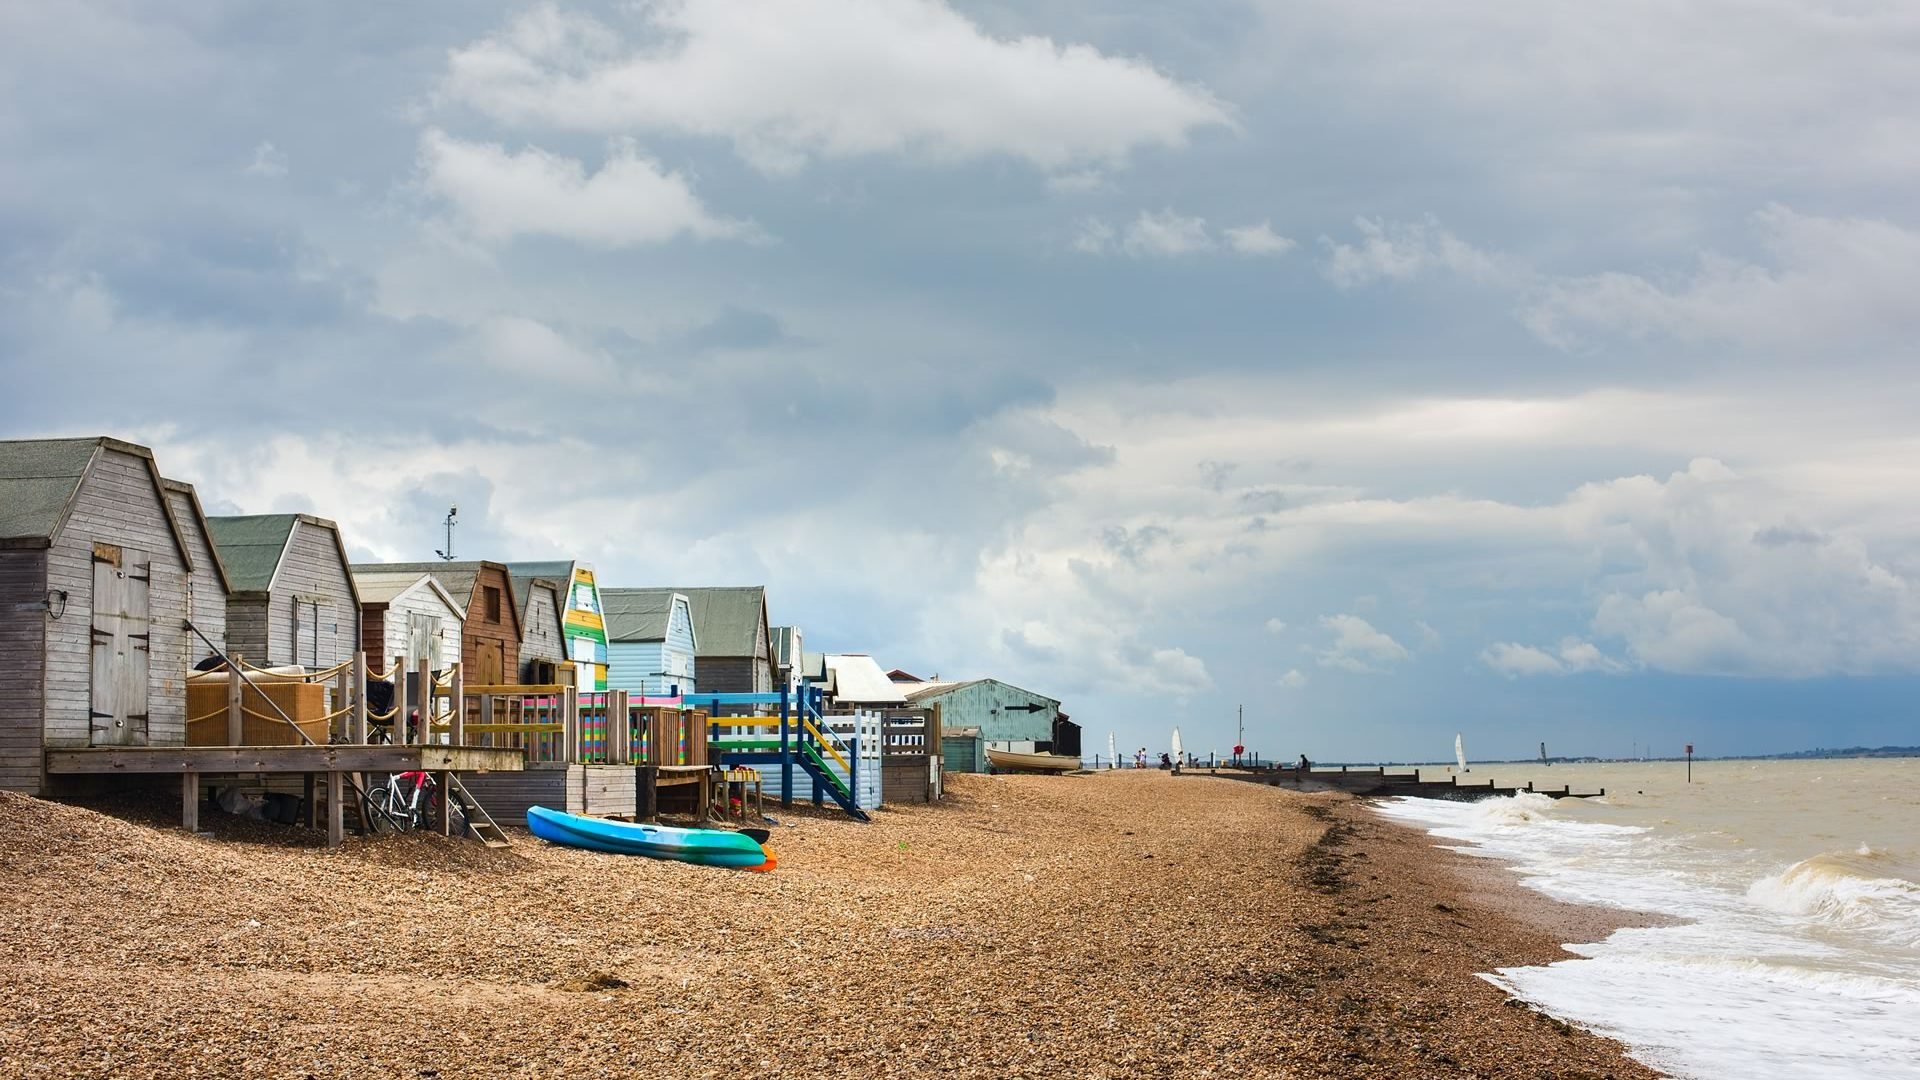 Visit Whitstable